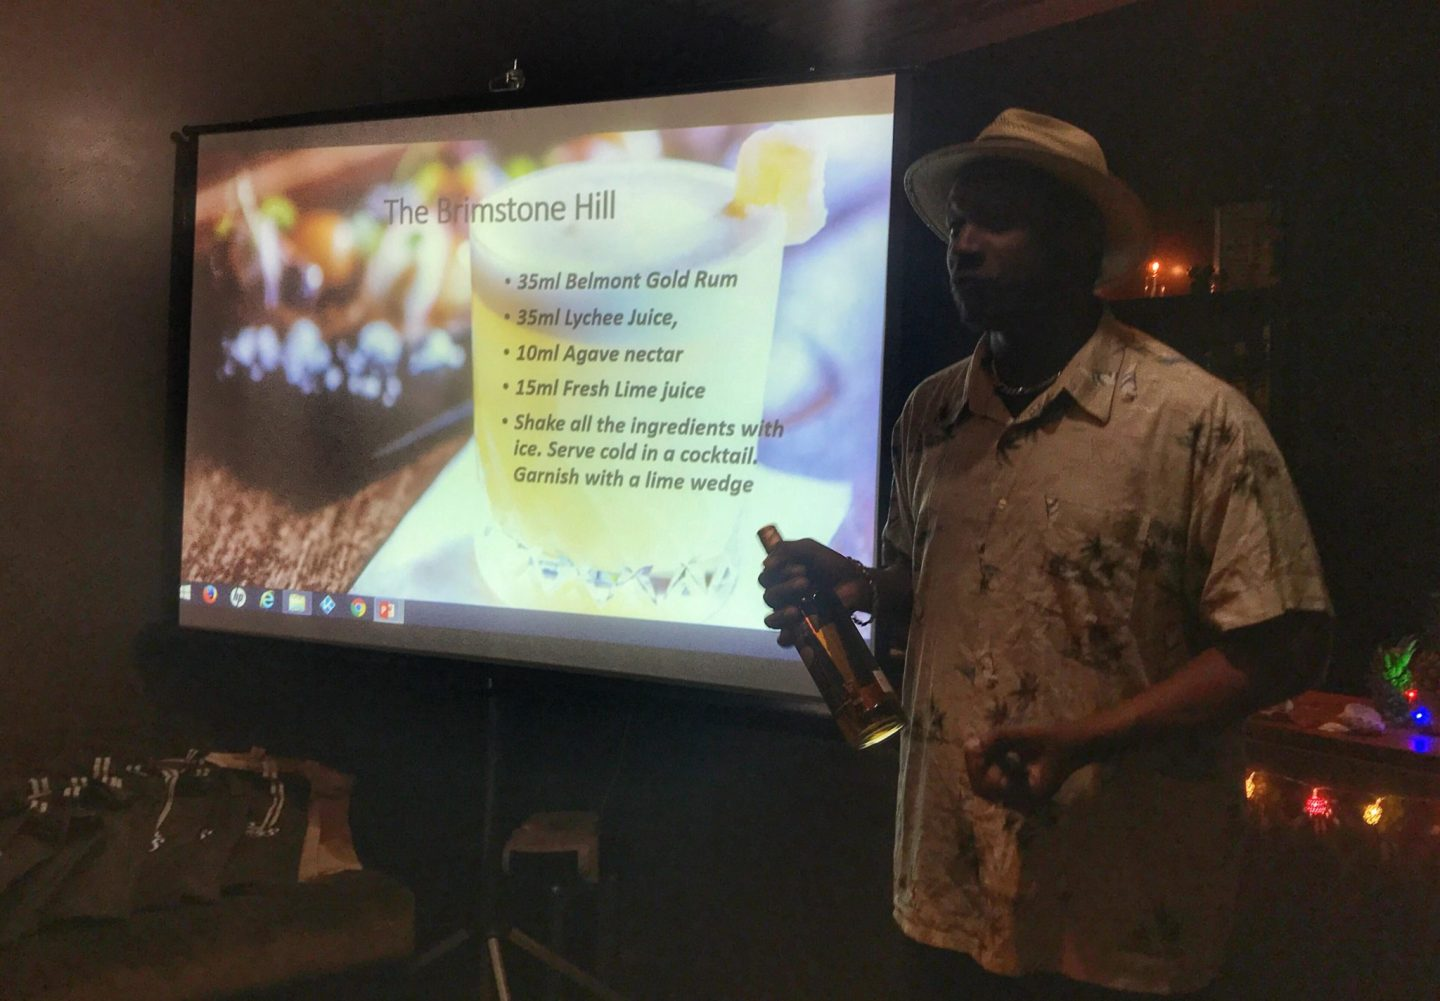 Ian Burrell, the Global Rum Ambassador, at the St Kitts Cocktail Event